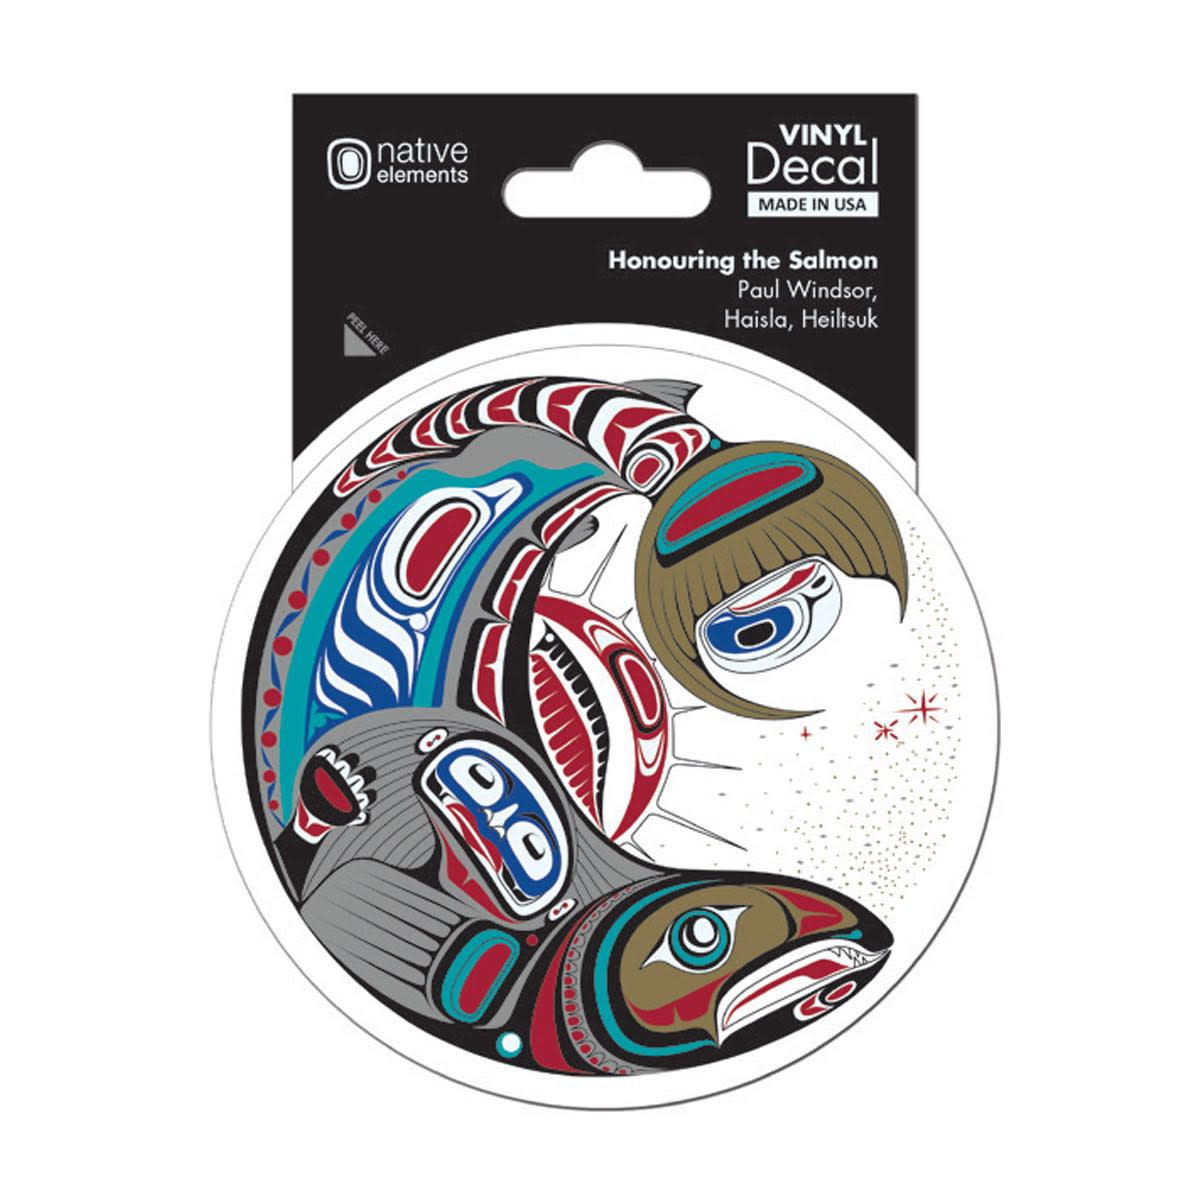 Premium Decal-Honouring the Salmon by Paul Windsor-2